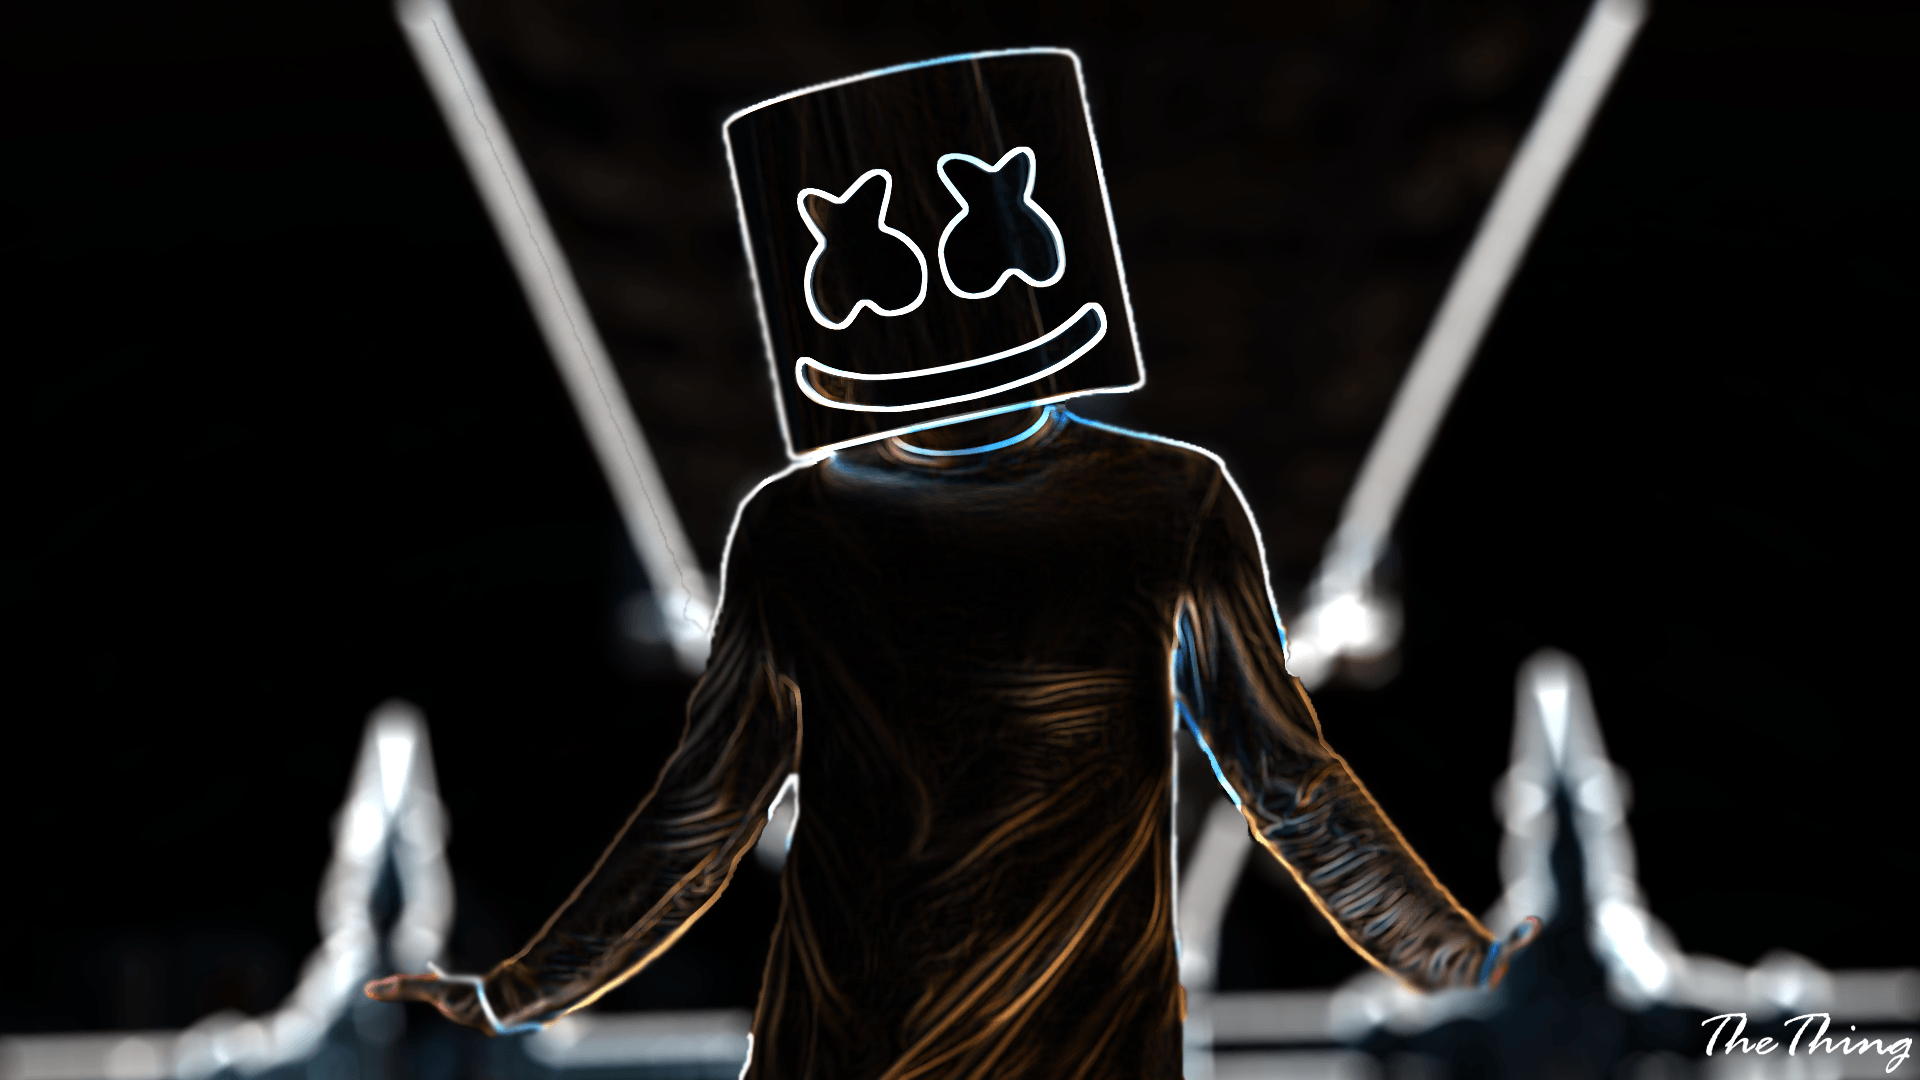 Marshmello Neon Musical Instrument Wallpaper No